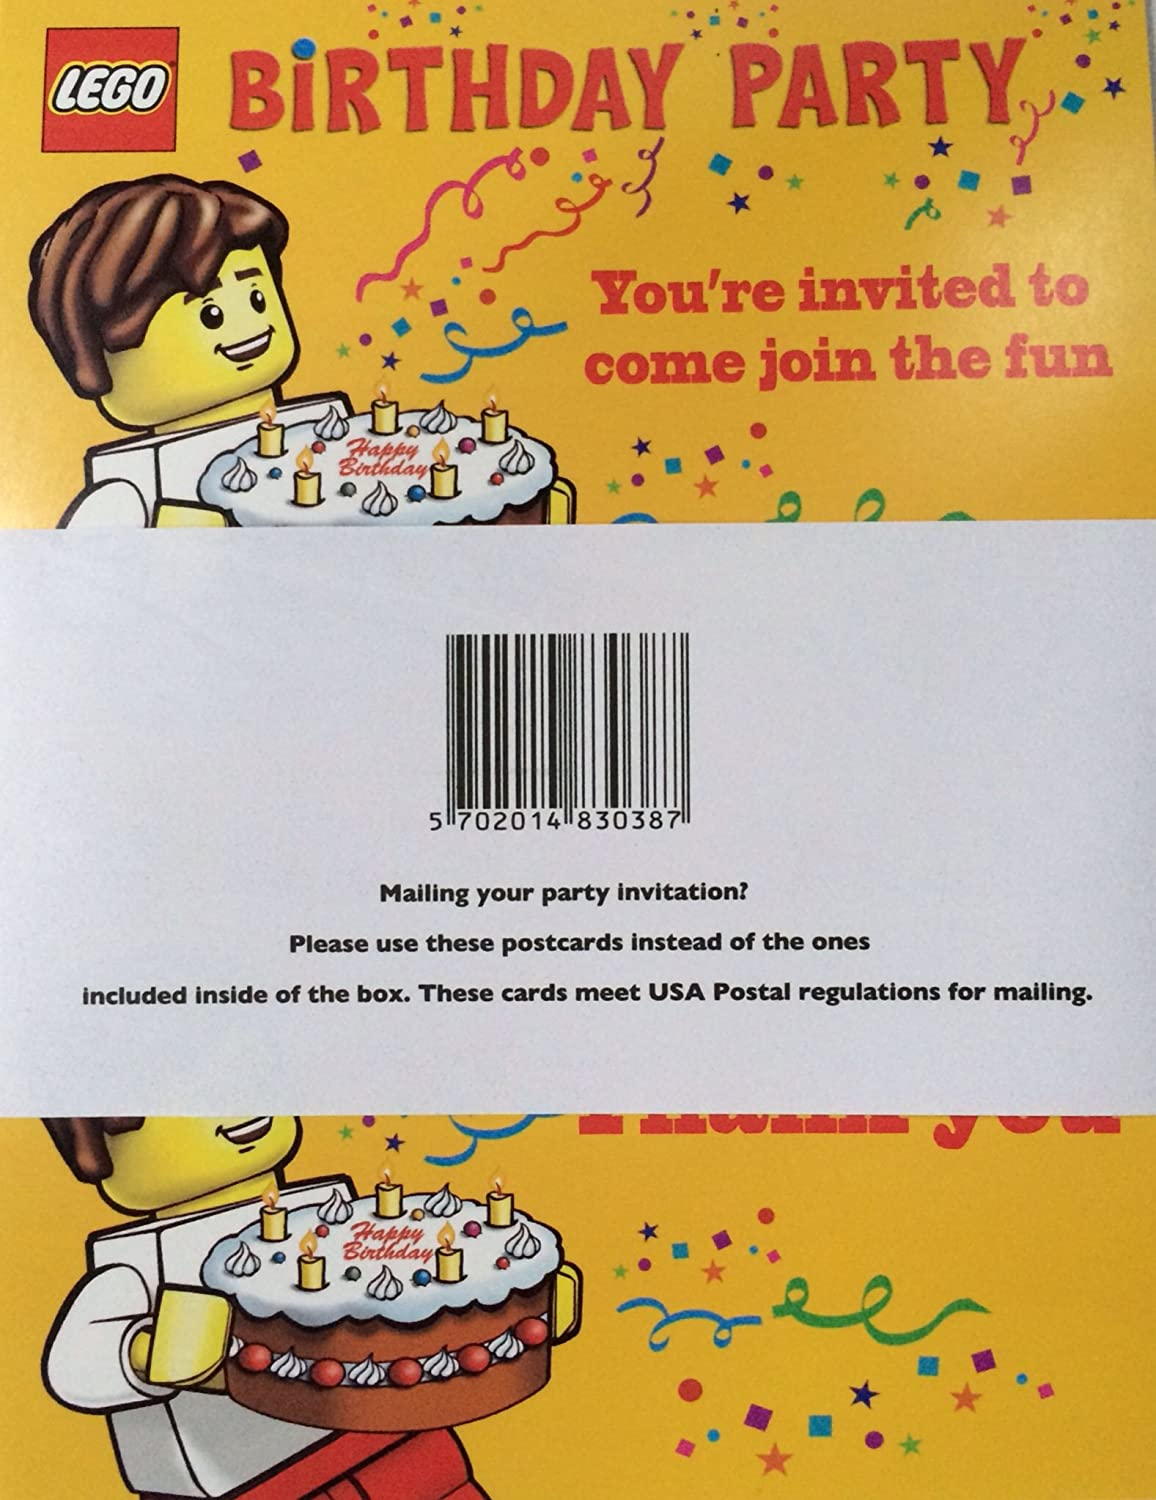 Lego Birthday Party Invitations - Pack of 10 Invitations: Amazon.co ...